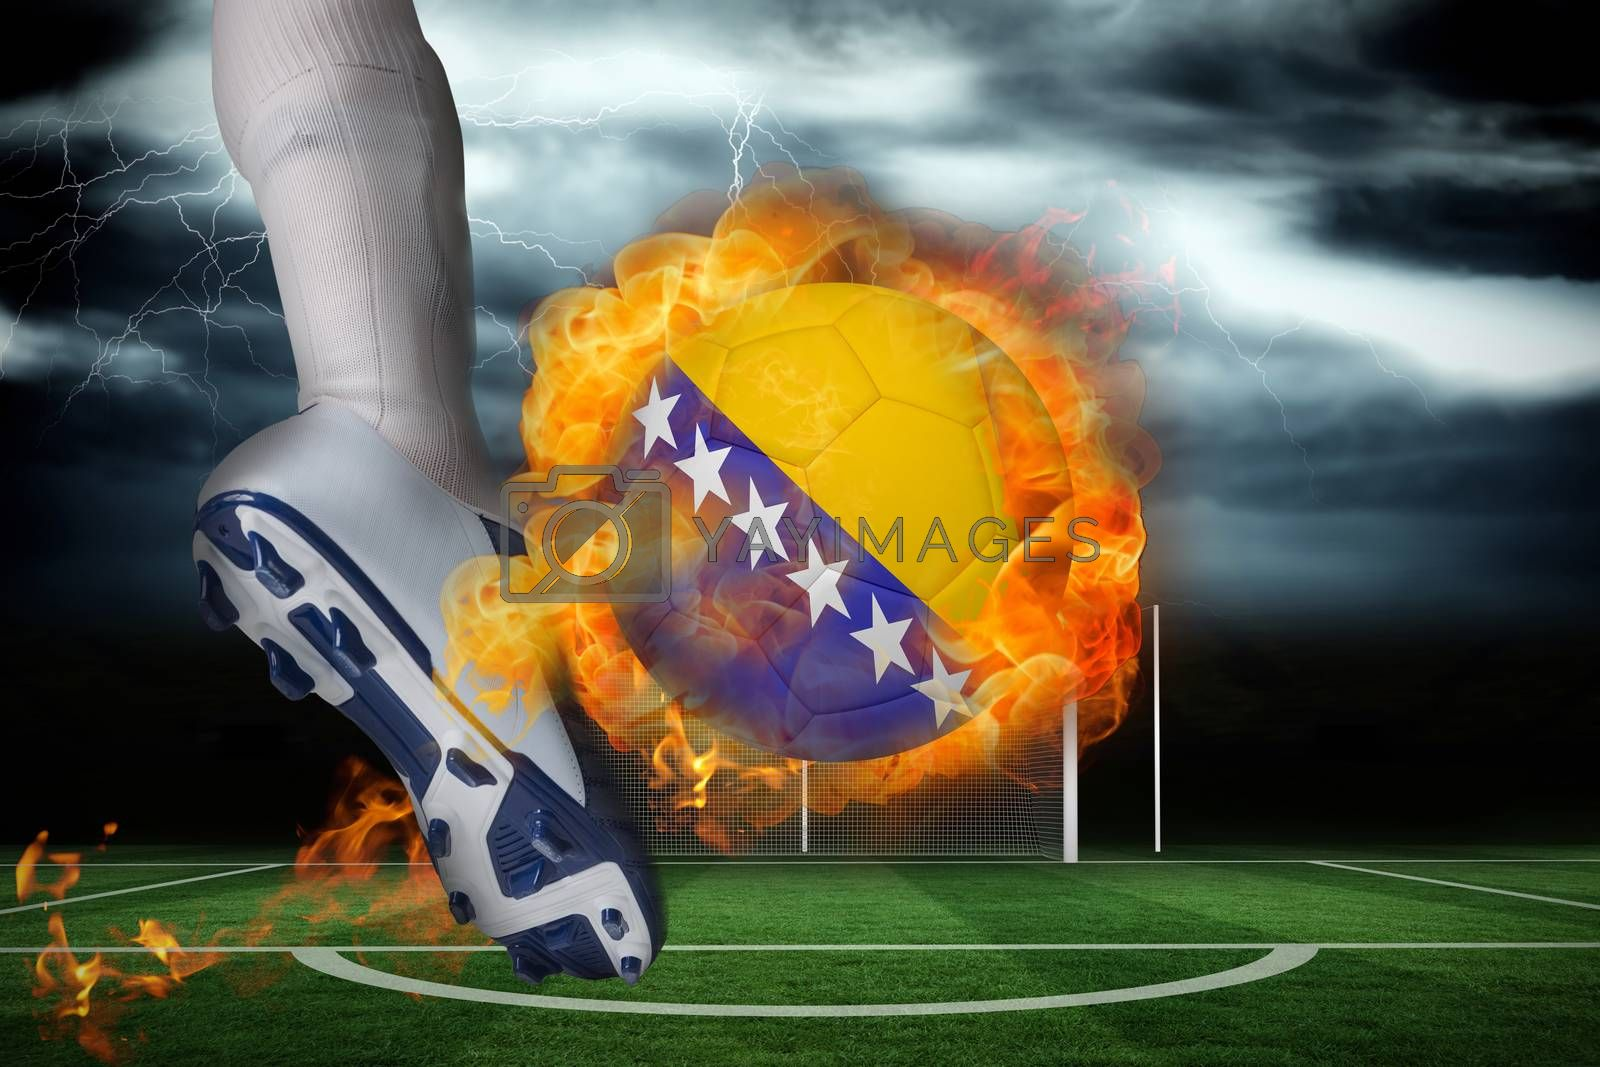 Football player kicking flaming bosnia flag ball by Wavebreakmedia